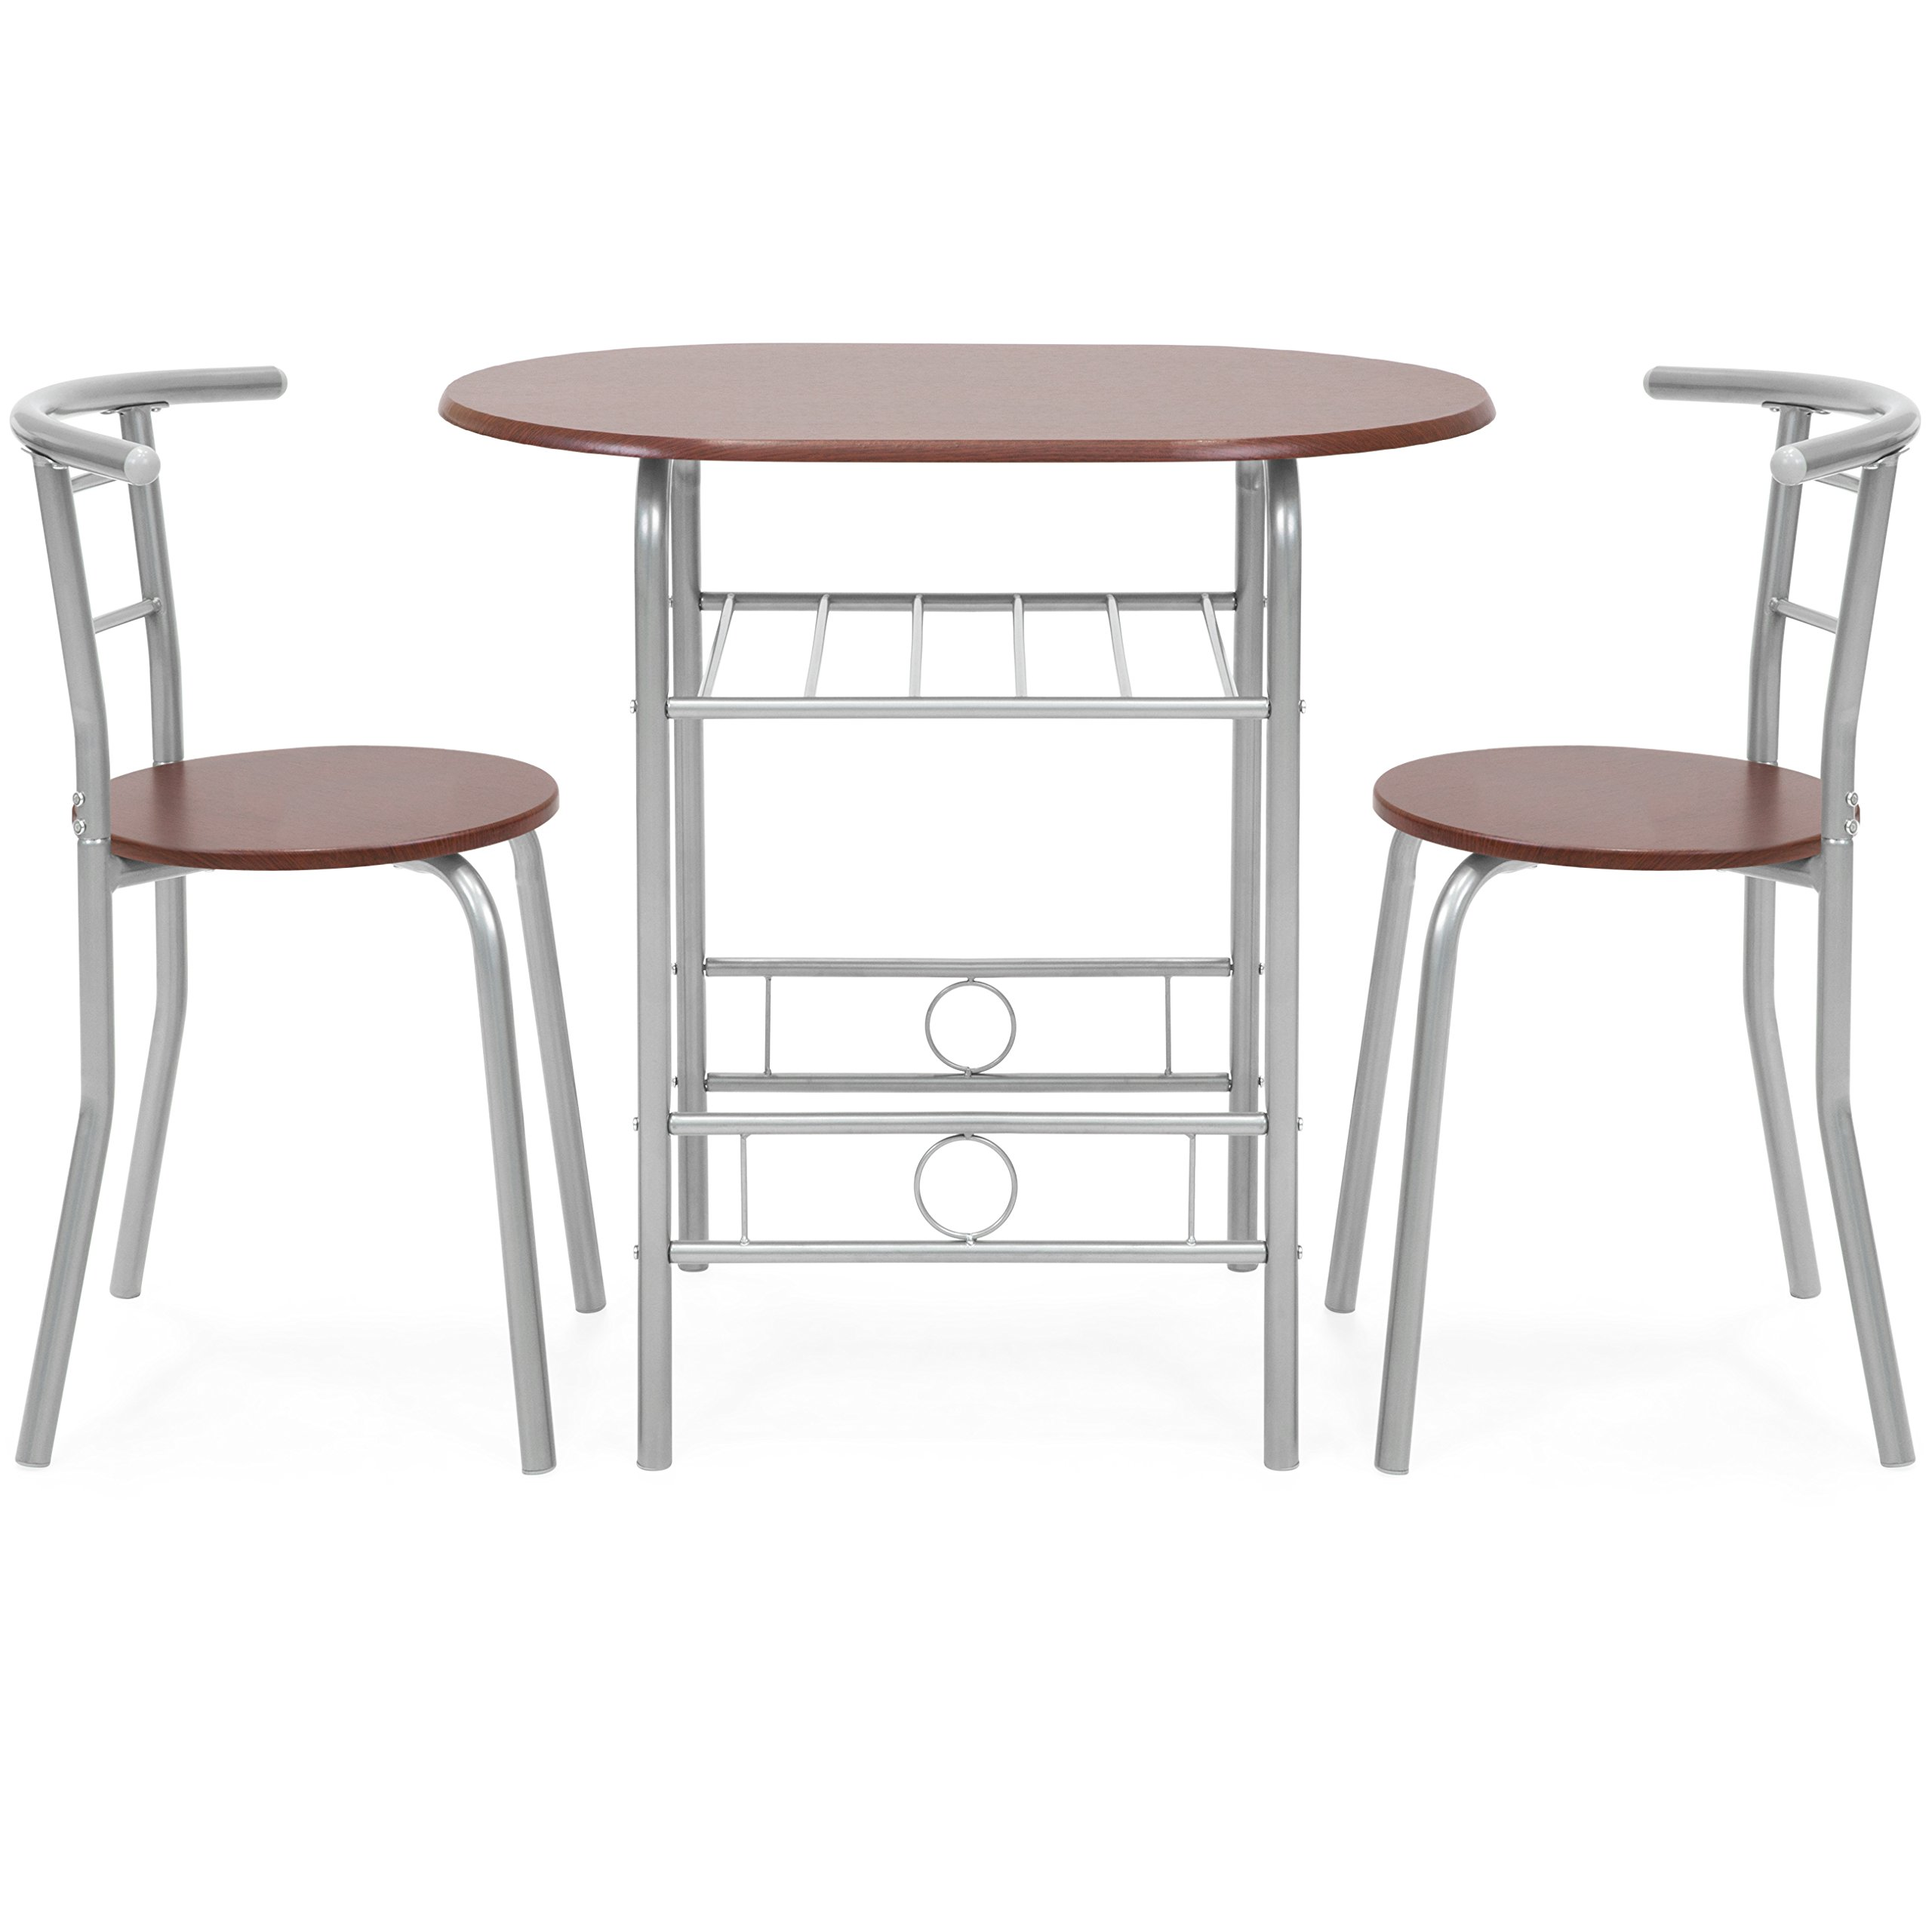 Best Choice Products 3-Piece Wooden Kitchen Dining Room Round Table and Chairs Set w/Built in Wine Rack (Espresso) by Best Choice Products (Image #2)